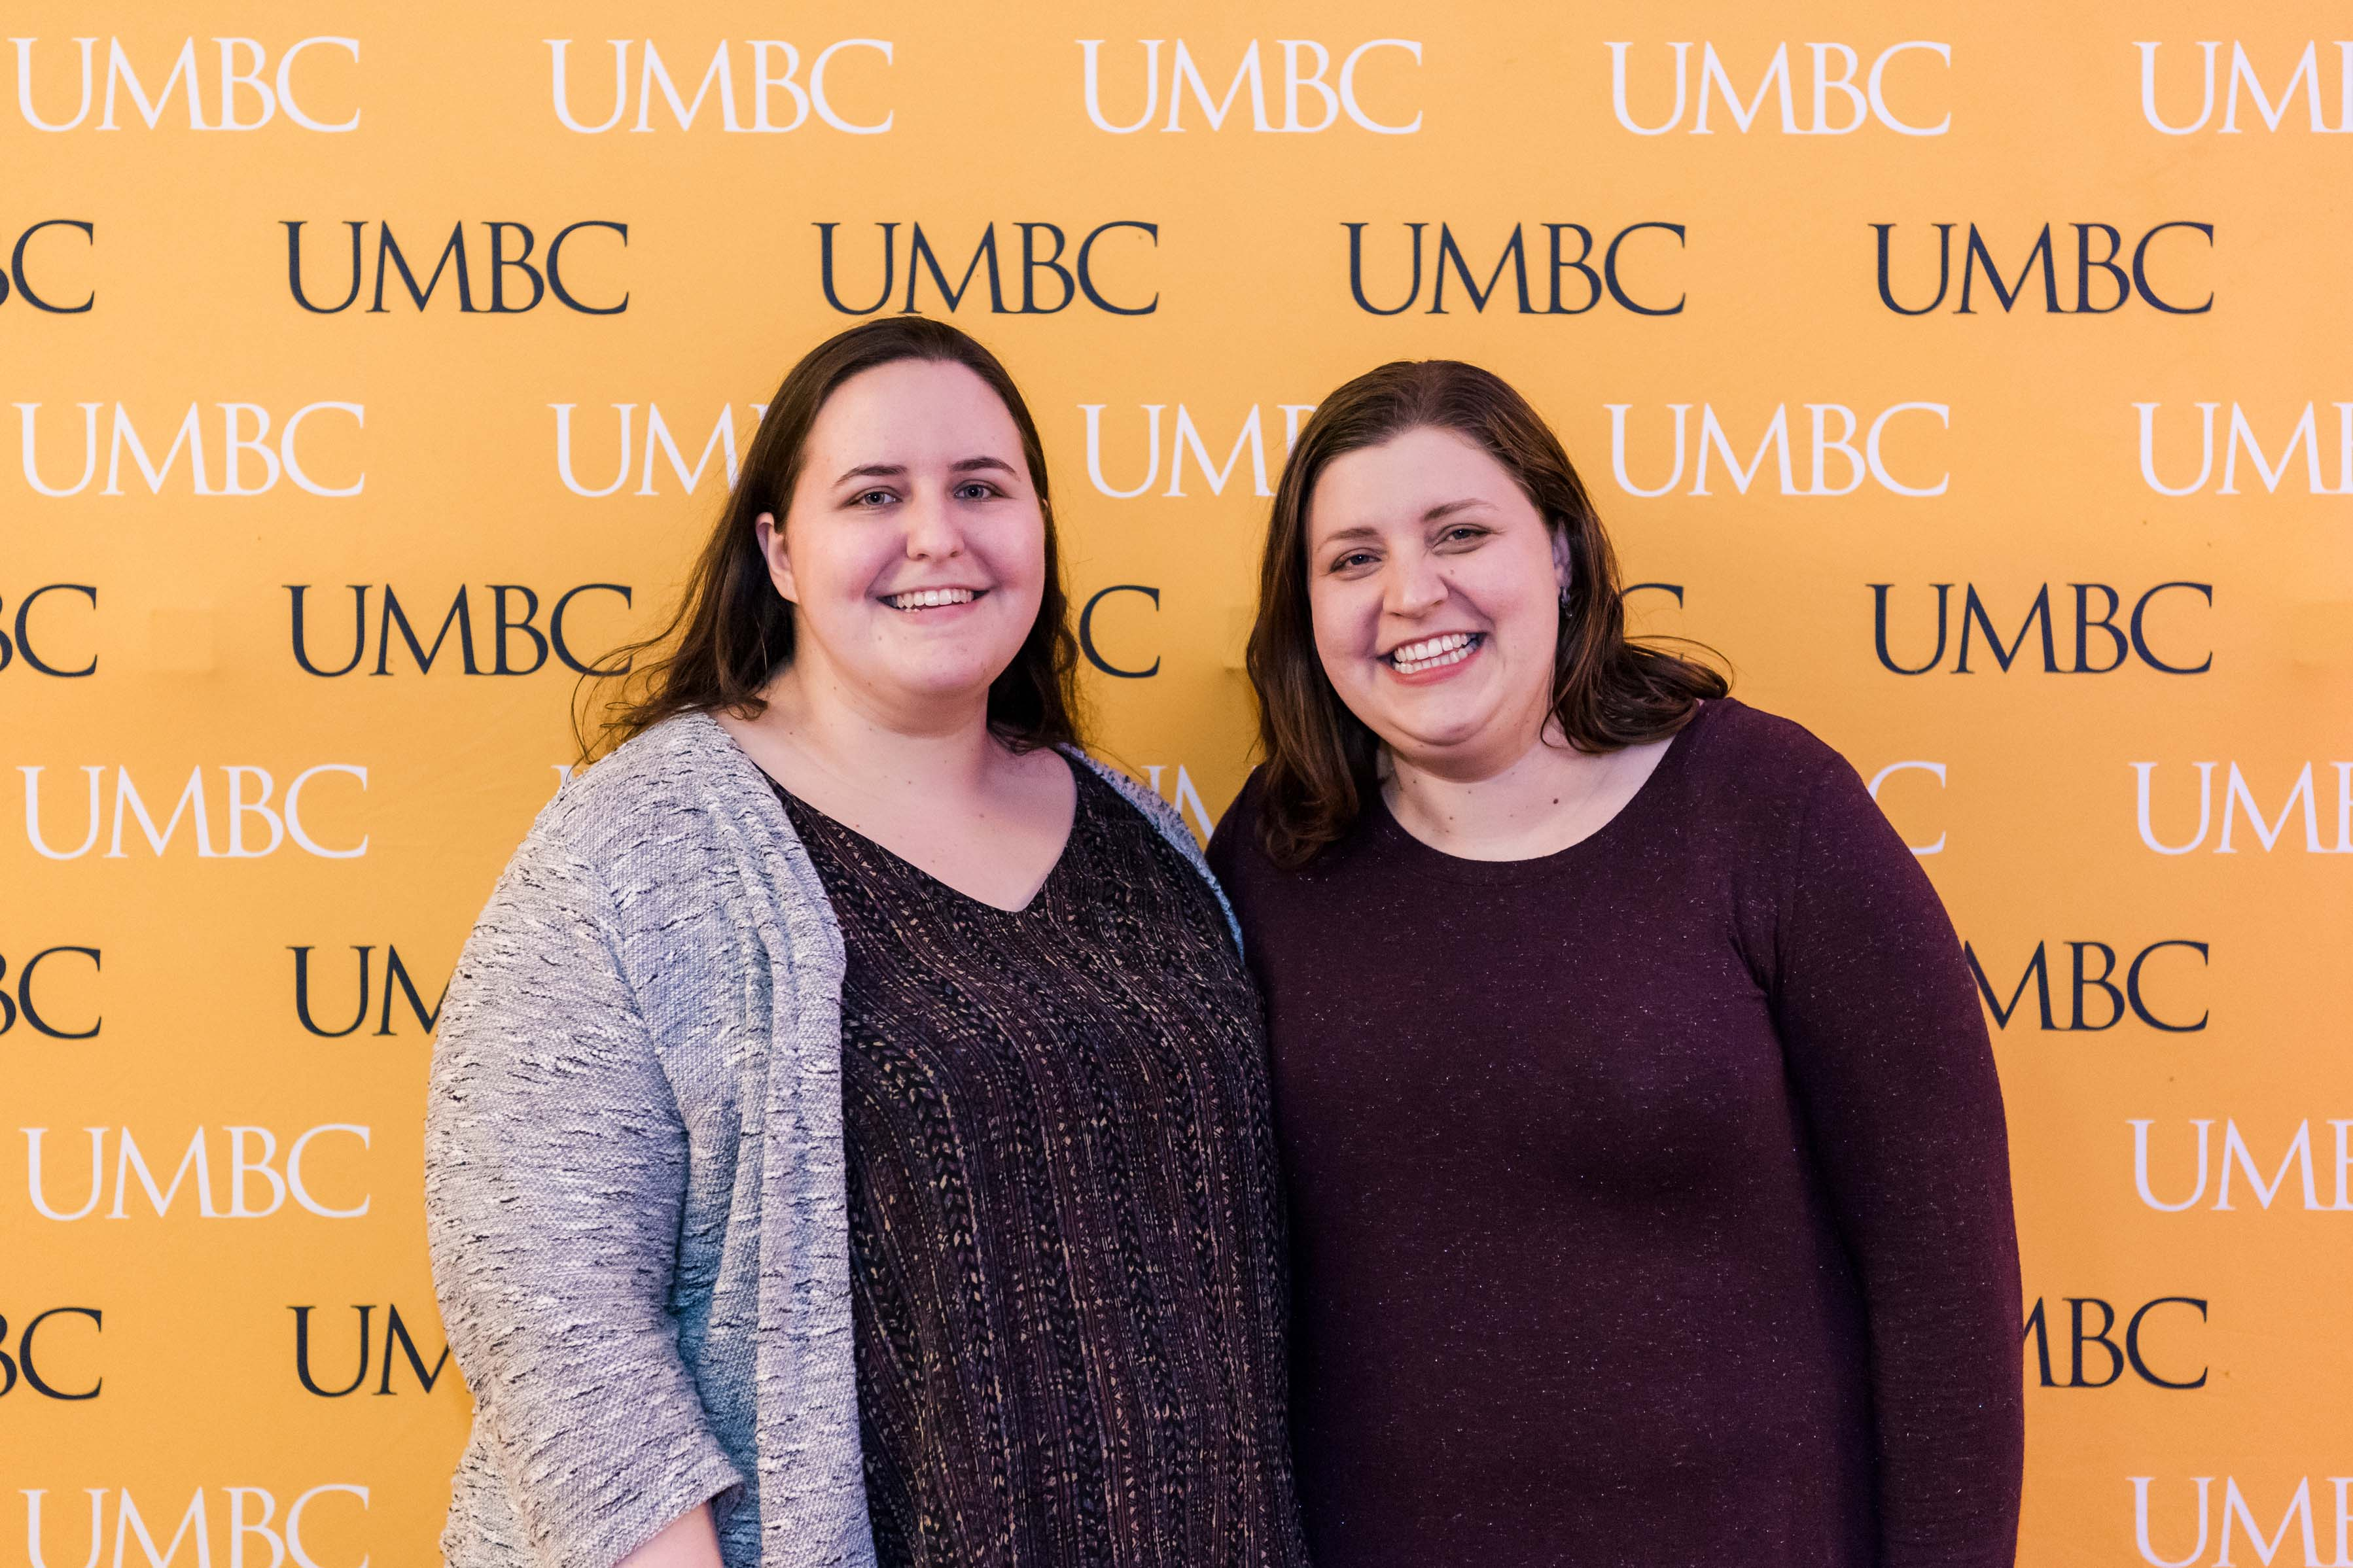 Two women pose at UMBC wall at 2018 wine tasting event